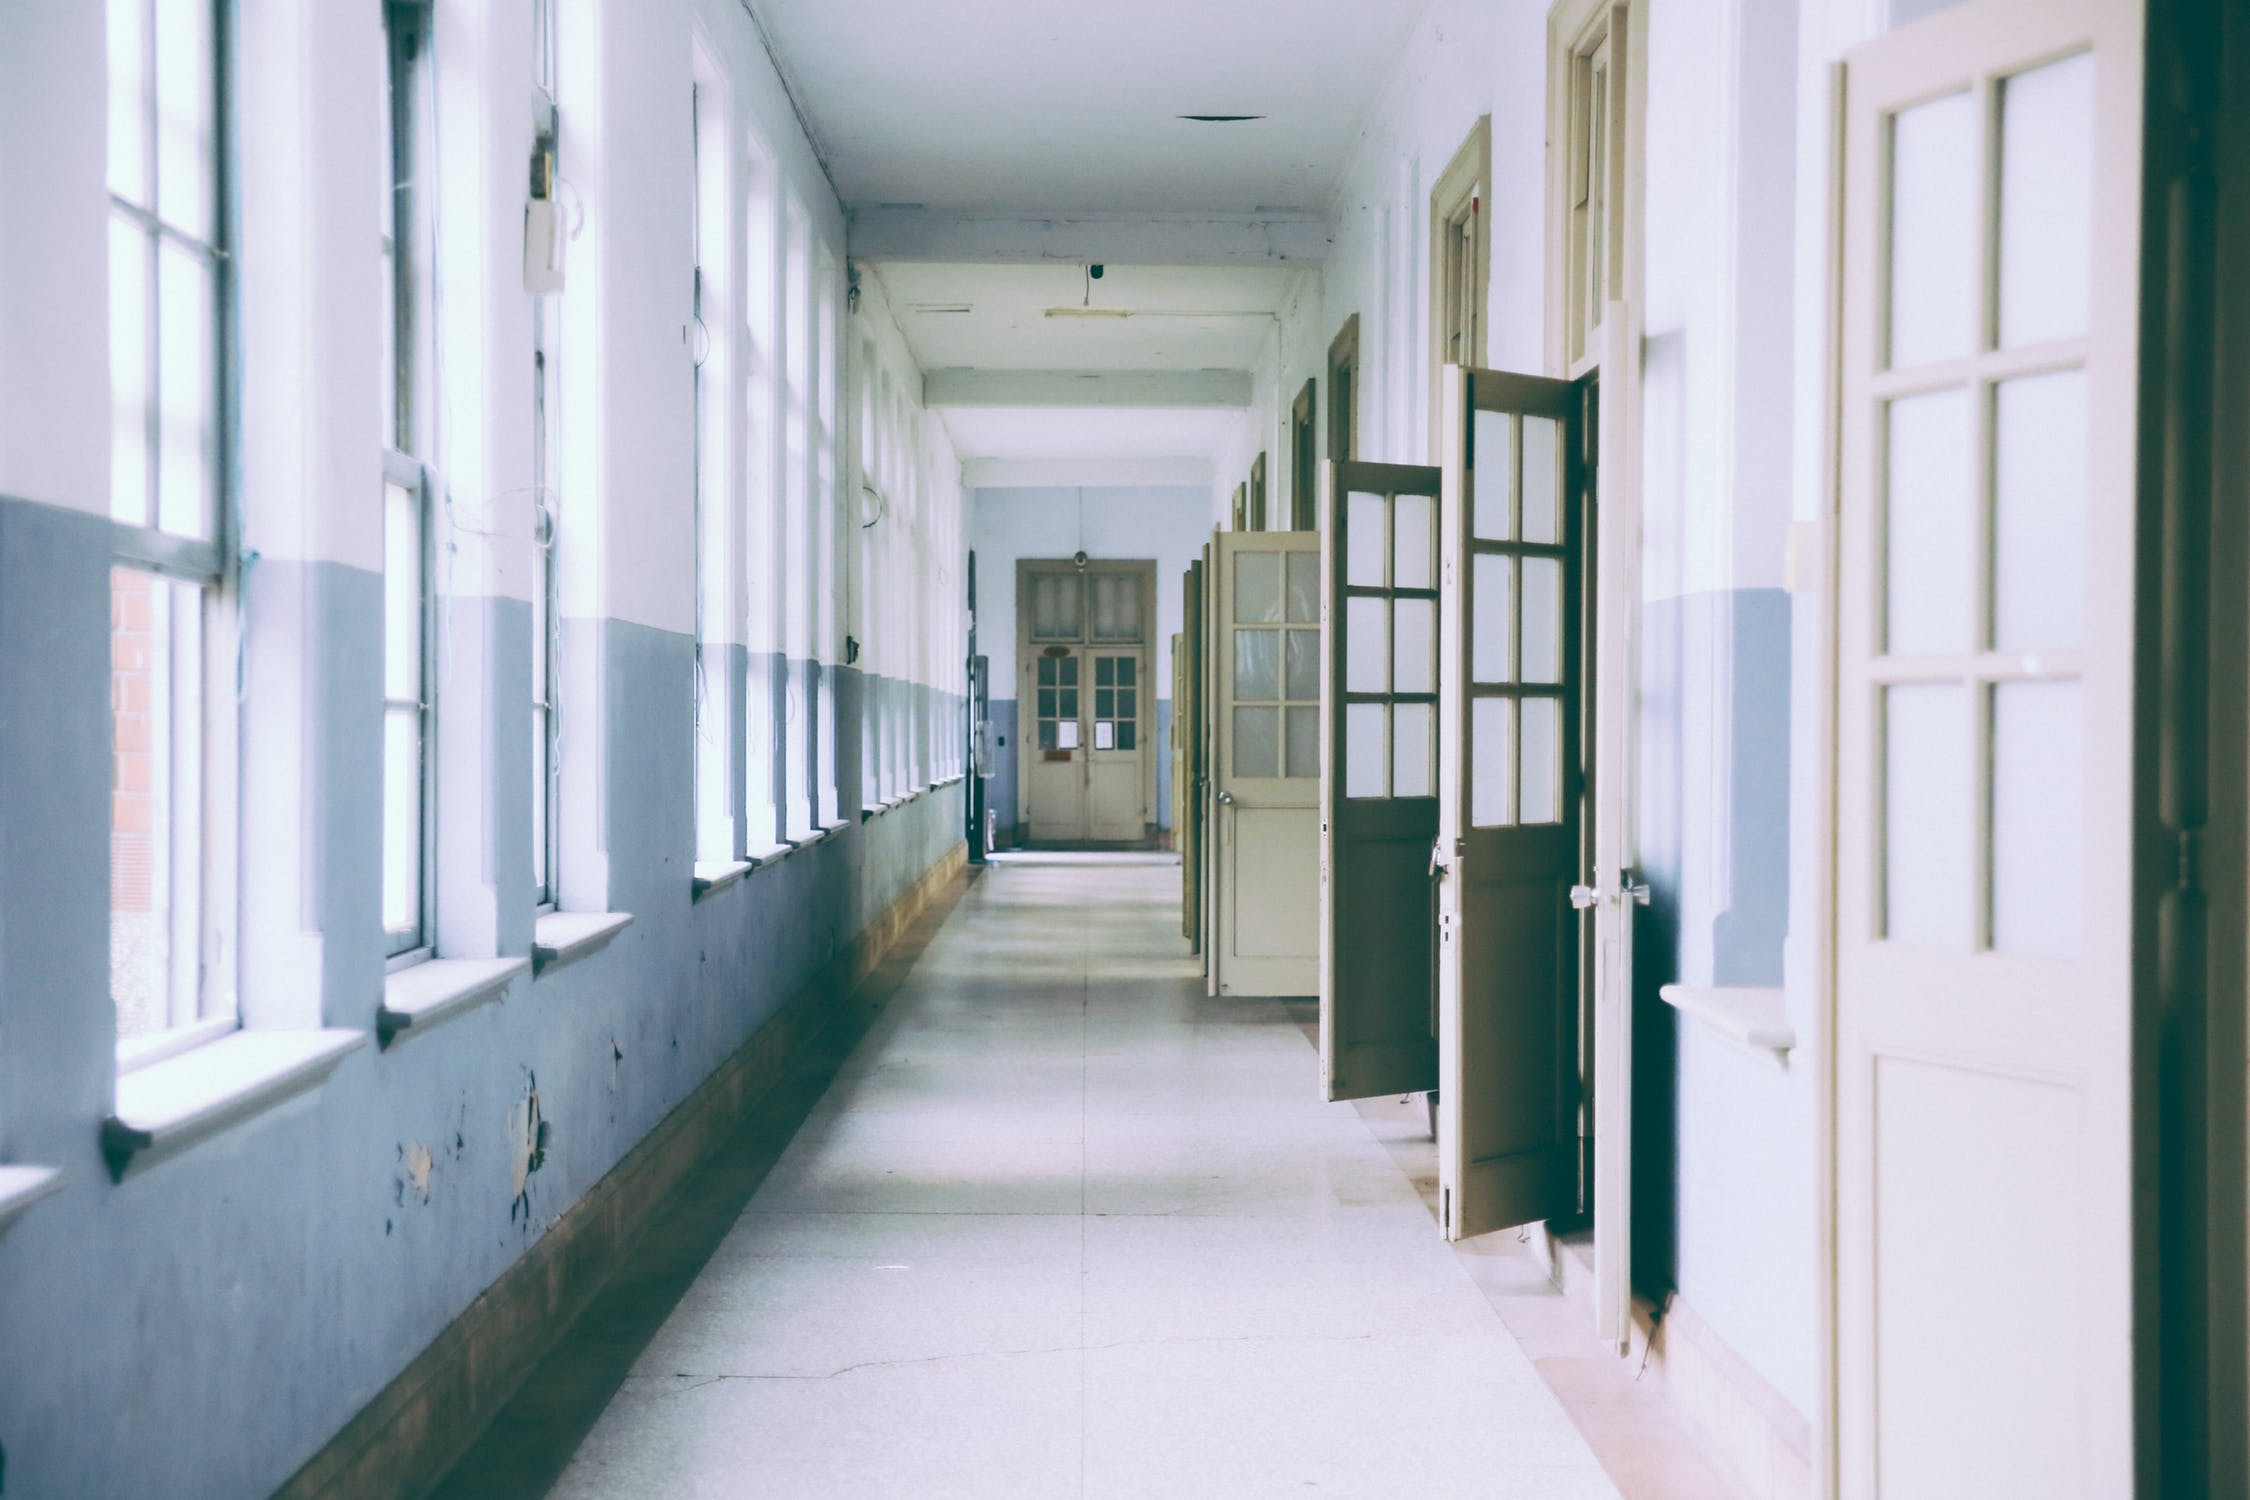 What to Do When You Suspect Abuse at School